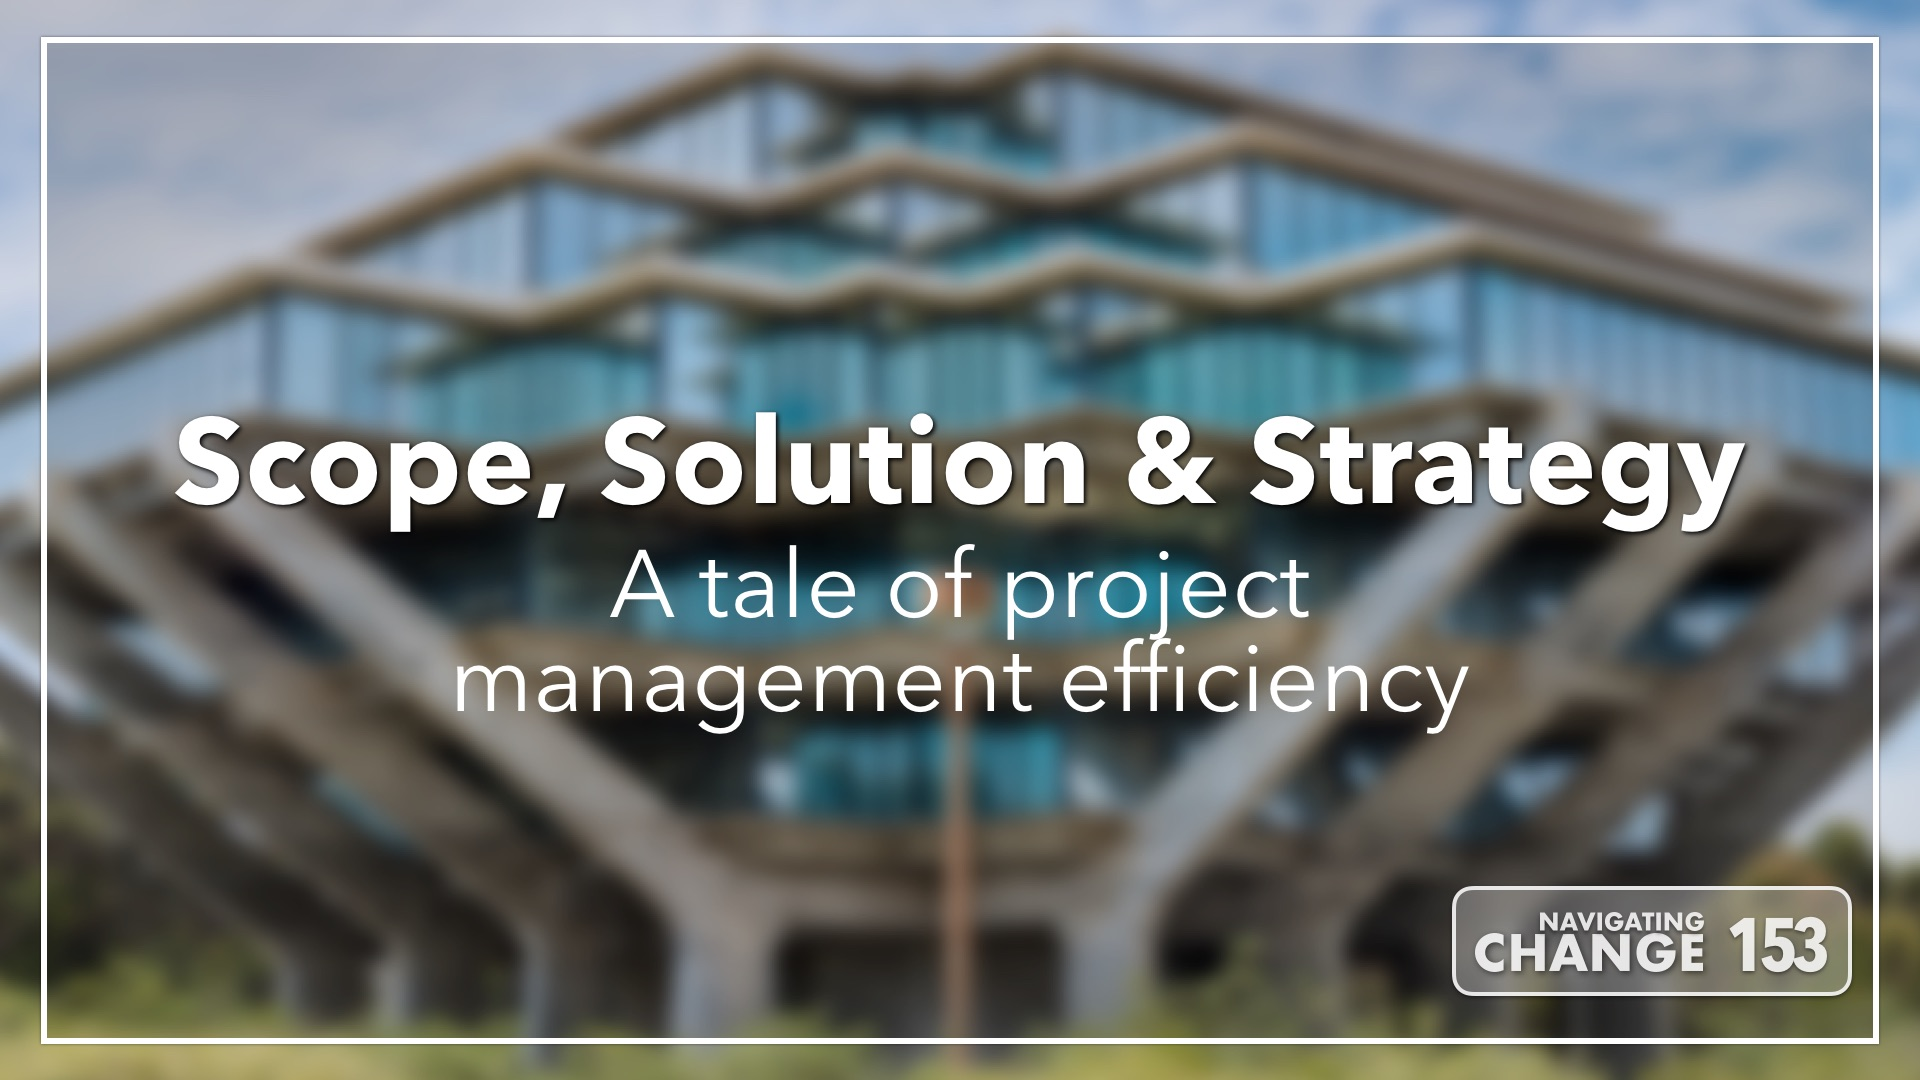 Listen to Project Management Efficiency on Navigating Change The Education Podcast